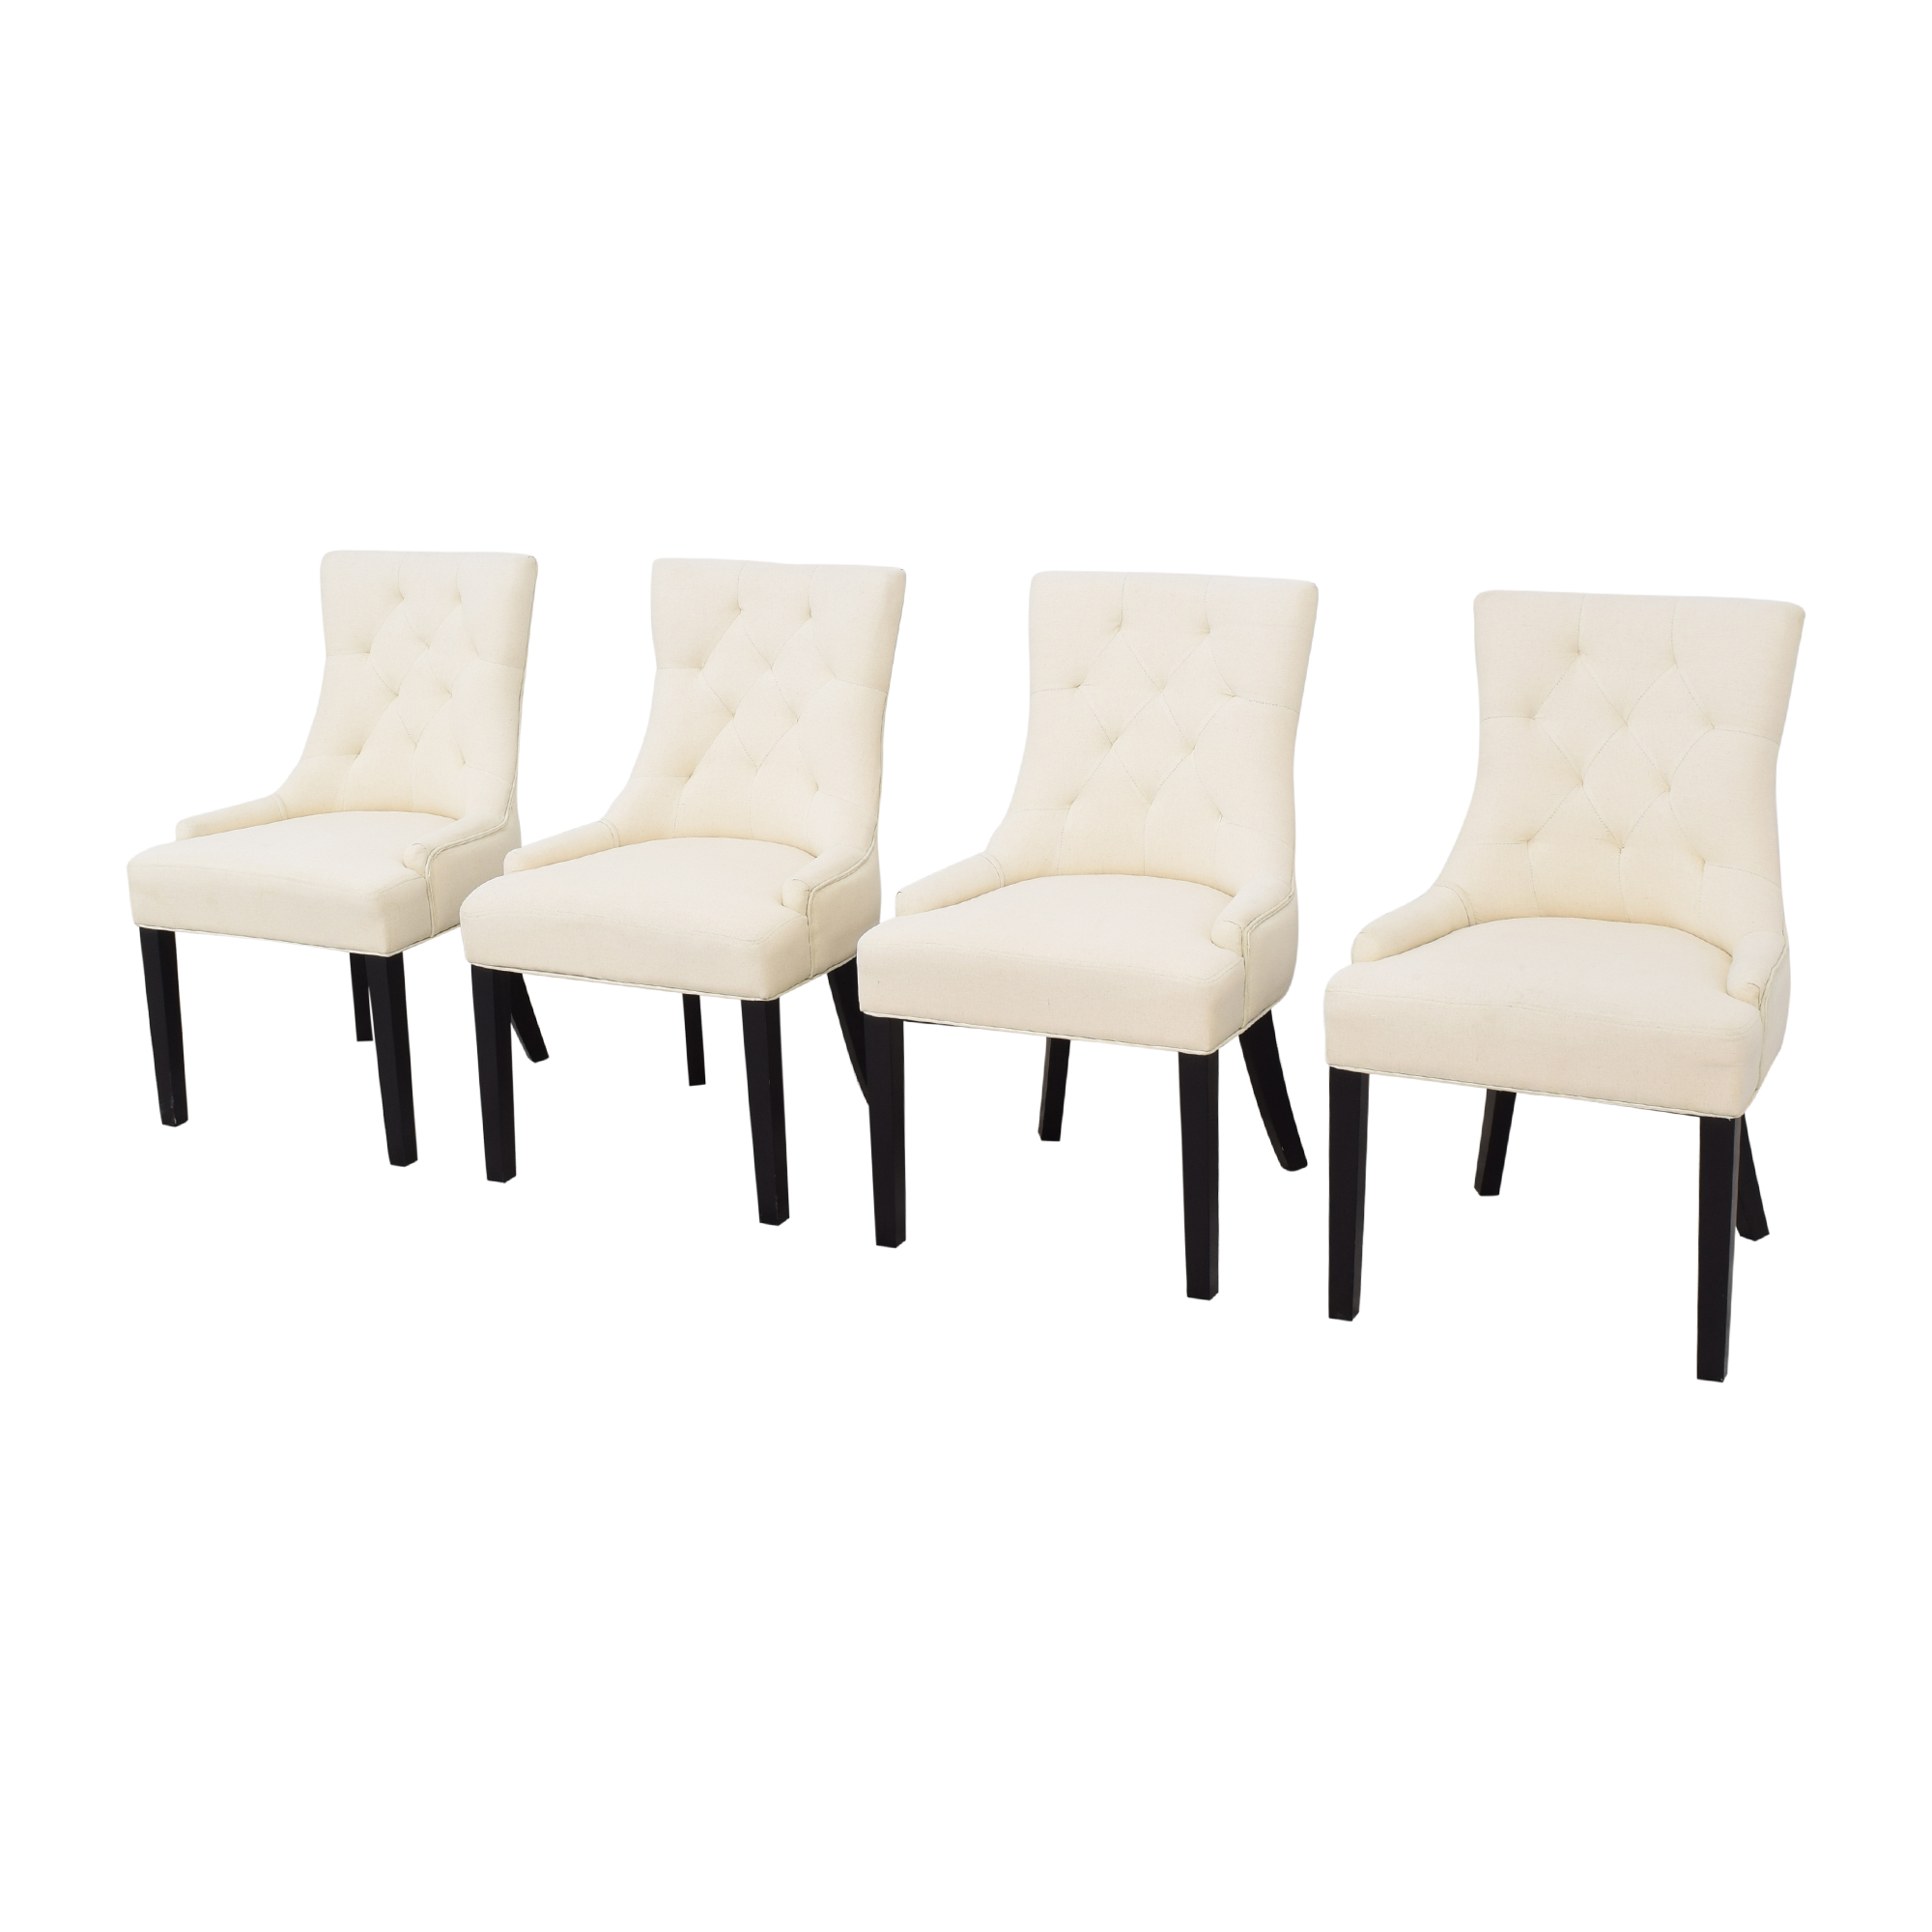 buy Upholstered Dining Chairs